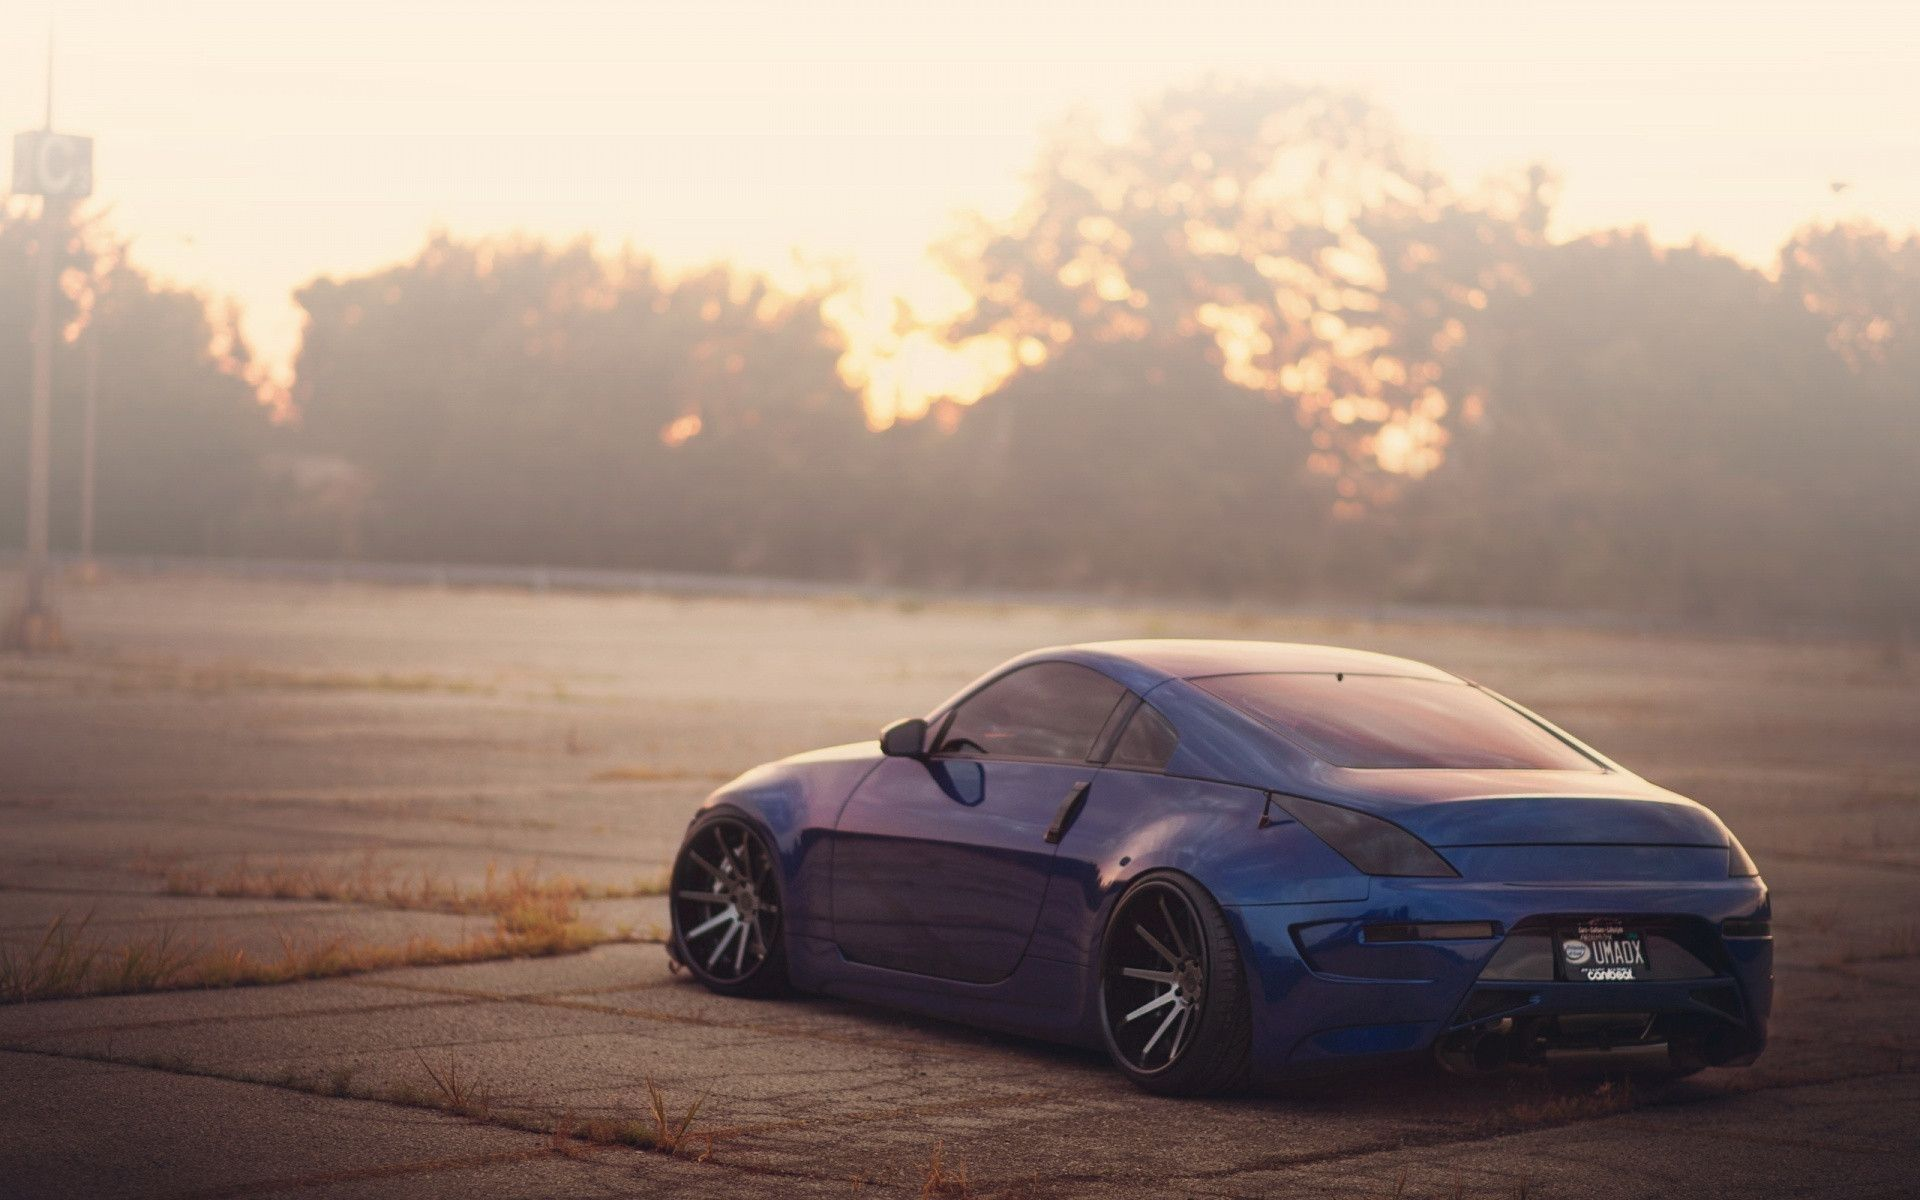 Download high quality 4k car wallpapers of supercars, hyper cars, muscle cars, sports cars, concepts & exotics for your desktop, phone or tablet. 10 New Nissan 350z Wall Paper Full Hd 1920 1080 For Pc Background 2019 Free Download Nissan 350z New Nissan Nissan